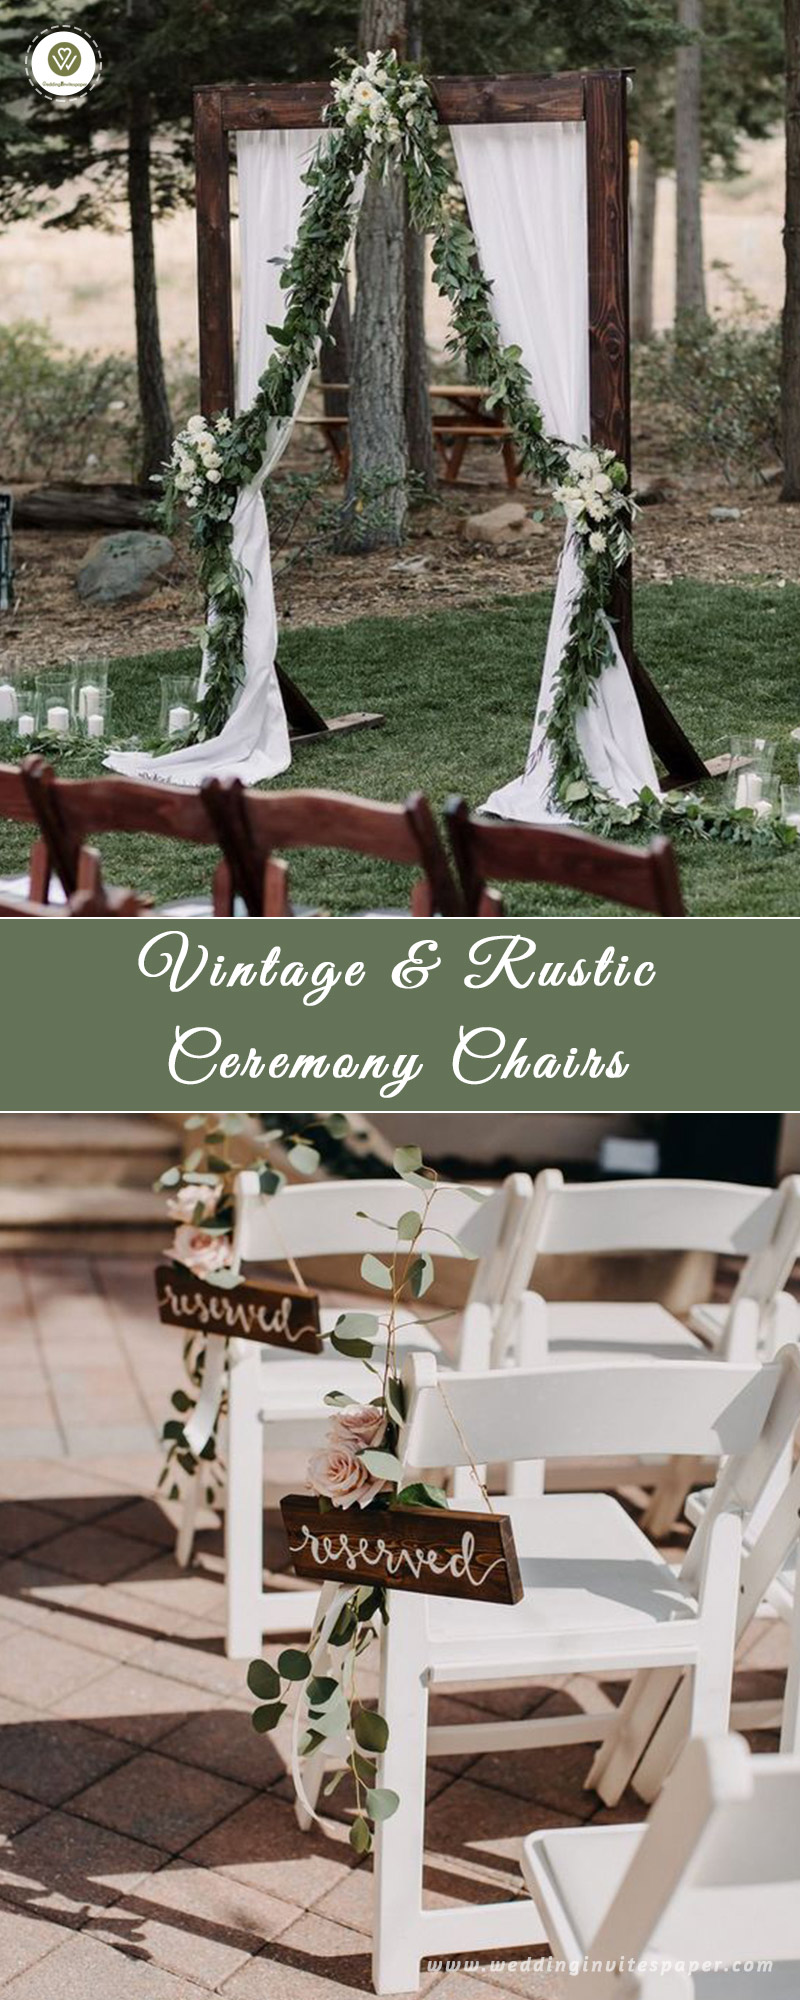 Vintage-&-Rustic-Ceremony-Chairs.jpg